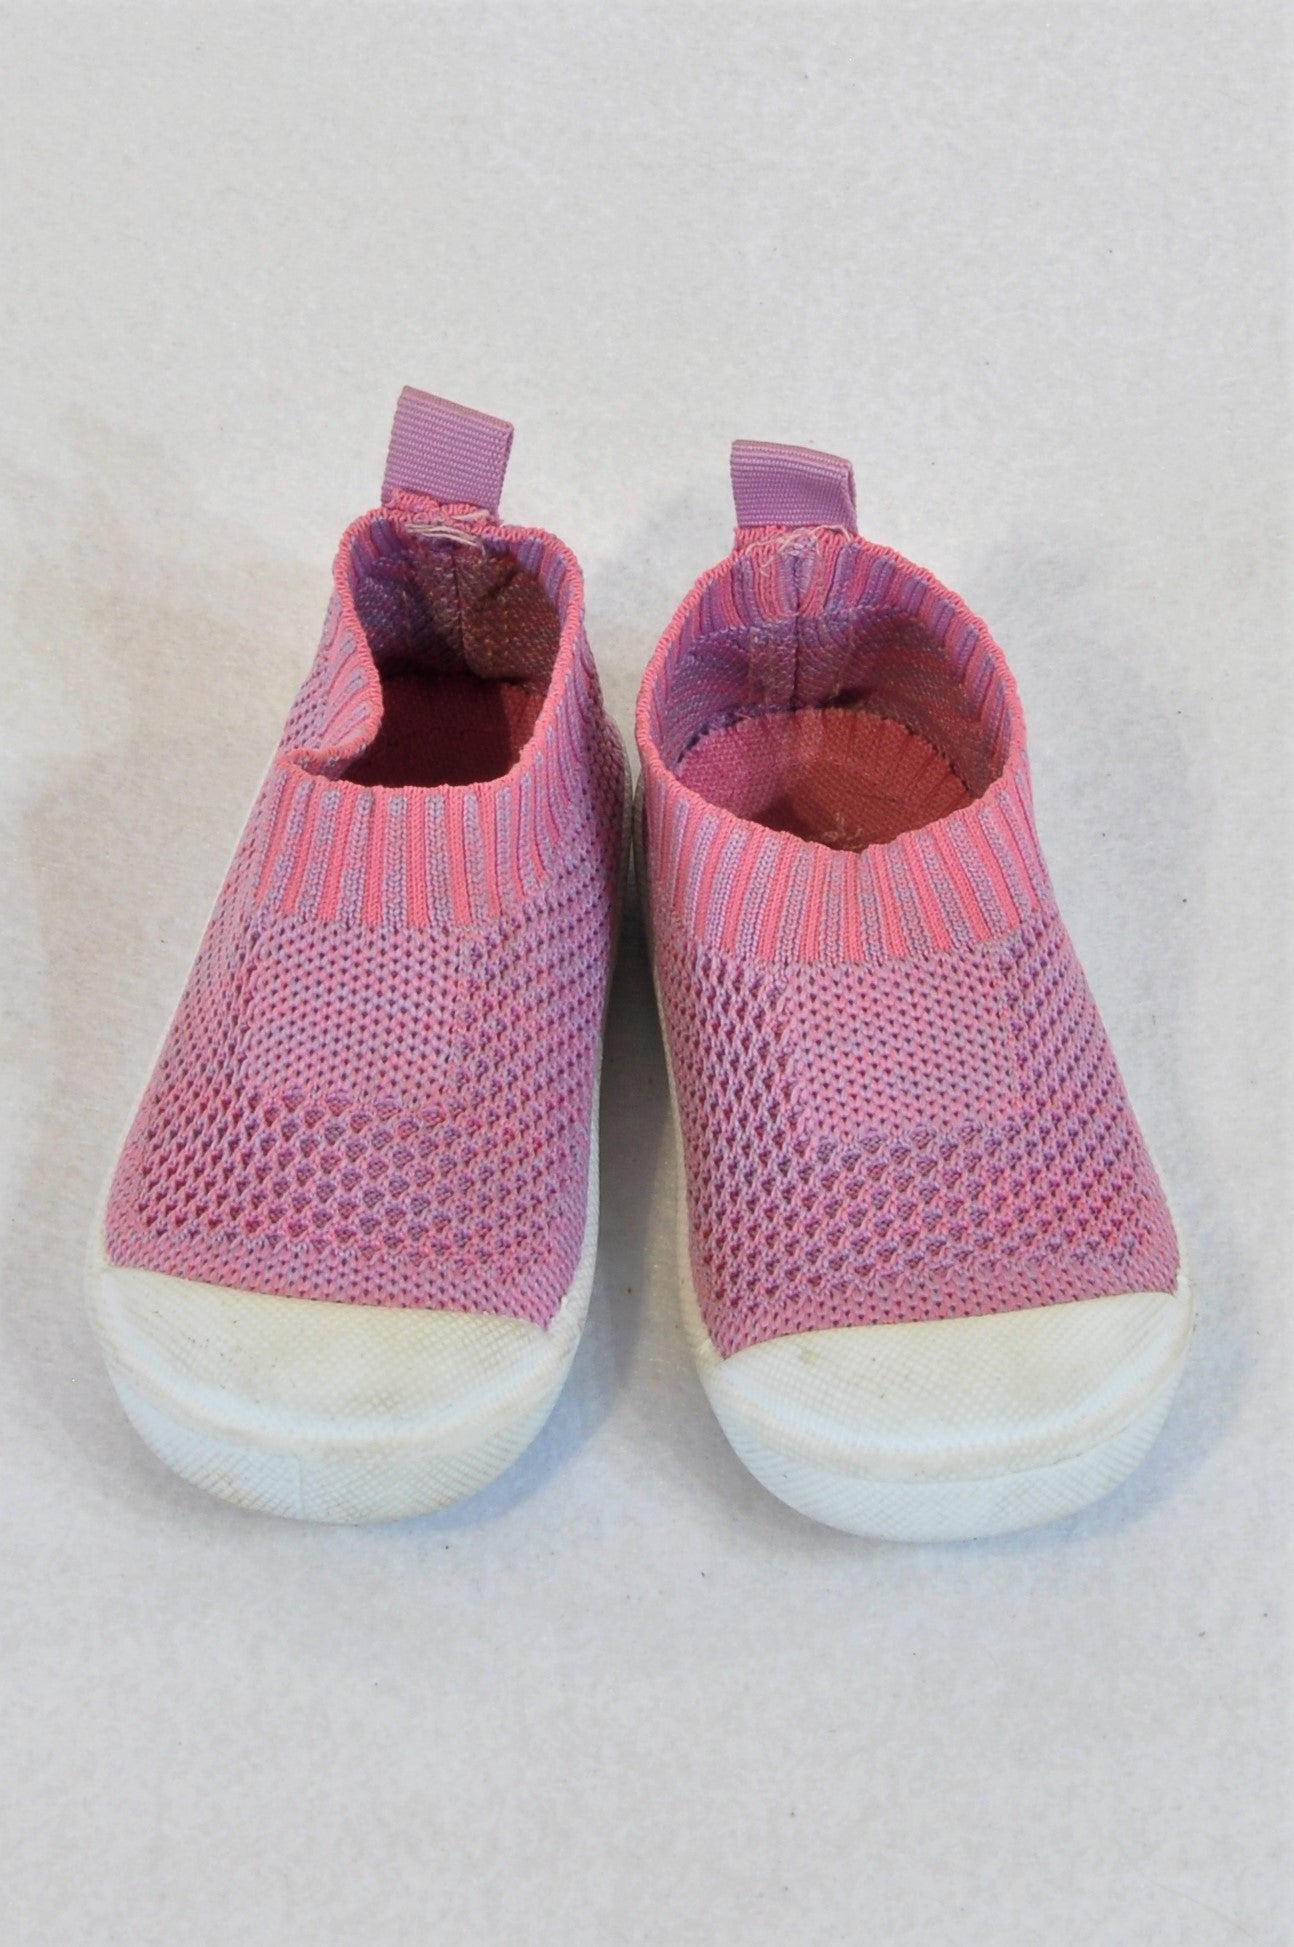 Woolworths Size 4 Pink Knit Slip On Shoes Girls 12-18 months